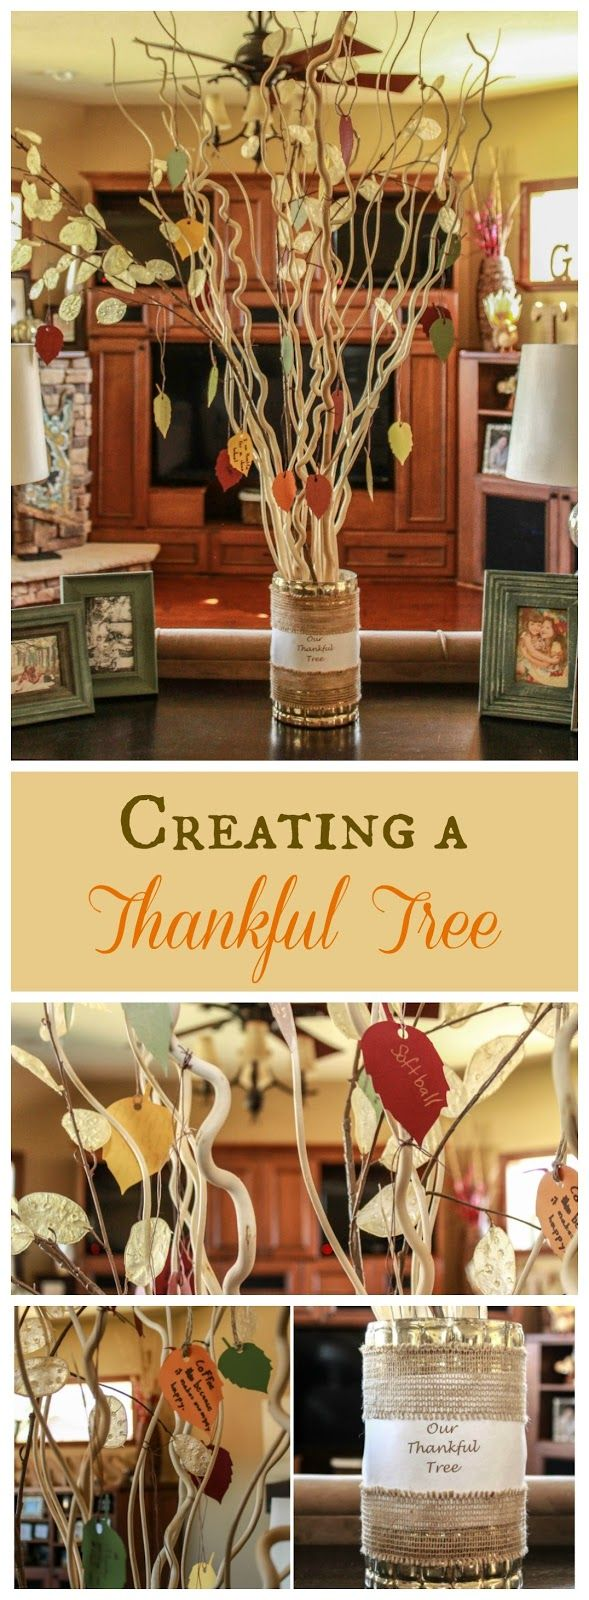 Easy & Festive Thanksgiving Decorations #Thanksgiving #decor #decorating #thanksgivingdecorations #autumn #fall #autumndecorations #falldecorations #craft #crafting